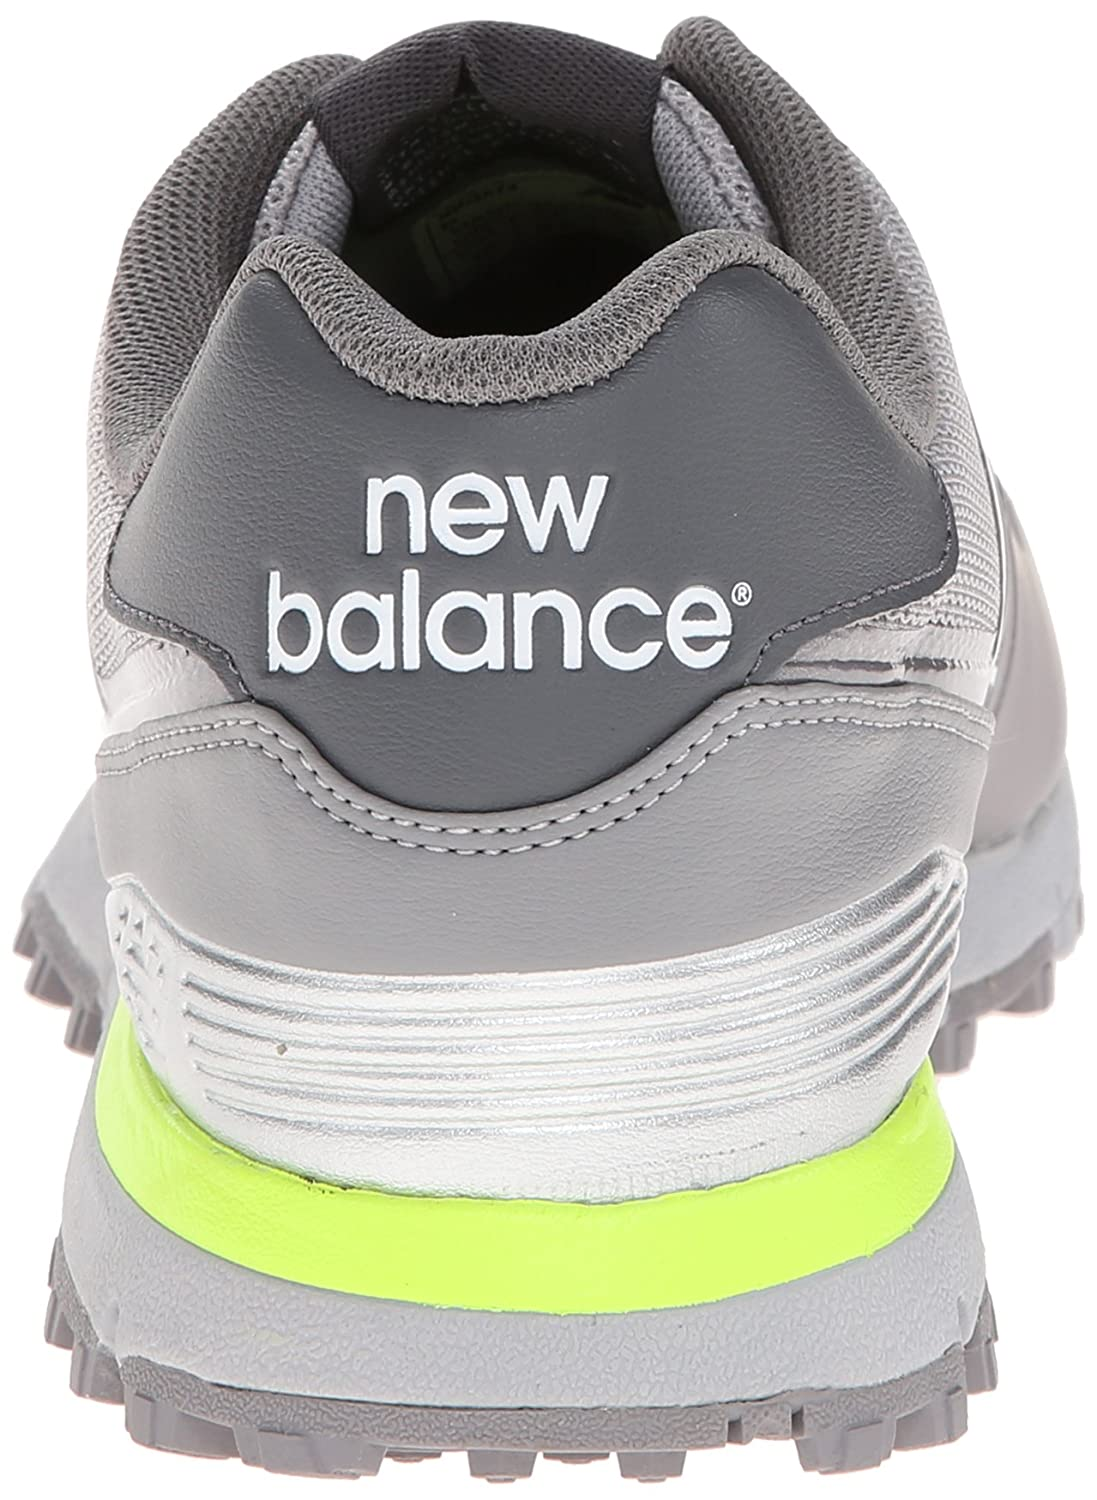 new balance classic 574 breathable spikeless golf shoes